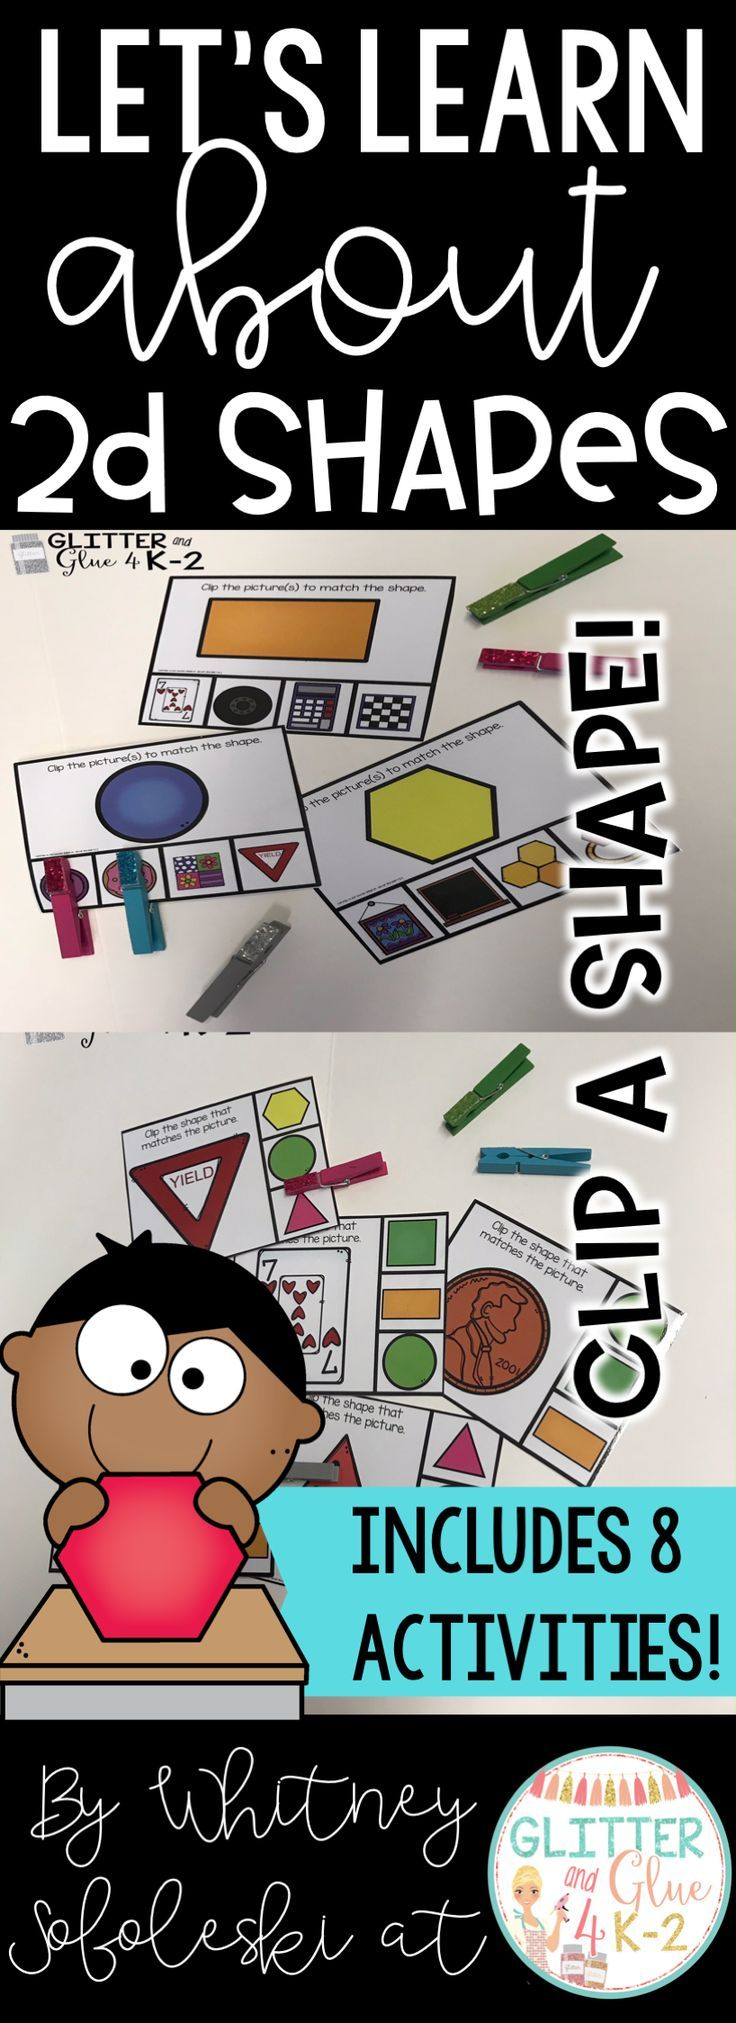 Your students will love these fun and interactive shape activities! Perfect for centers or small group interventions! There are 8 activities included that focus on the 2D shapes: circles, triangles, rectangles, squares, and hexagons. Keywords: shapes, 2d shapes, interventions, kindergarten centers, math centers, fun centers, kindergarten shape activities, shape centers, teaching shapes in kindergarten, shape worksheets, geometry